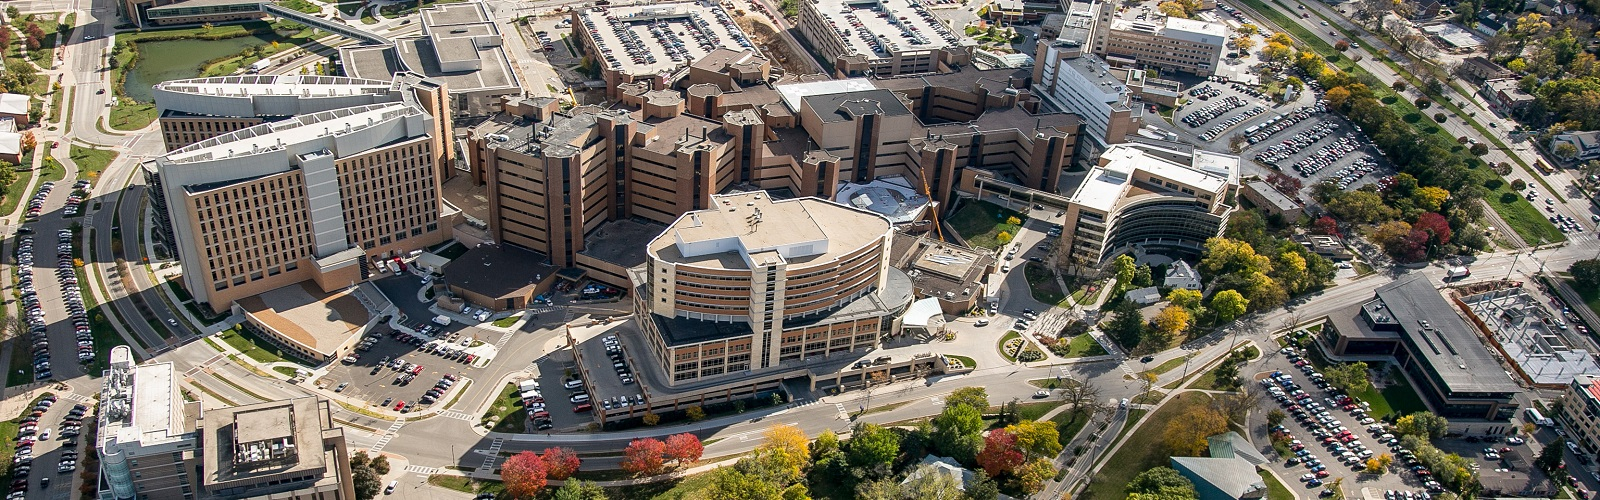 aerial view of the medical school campus